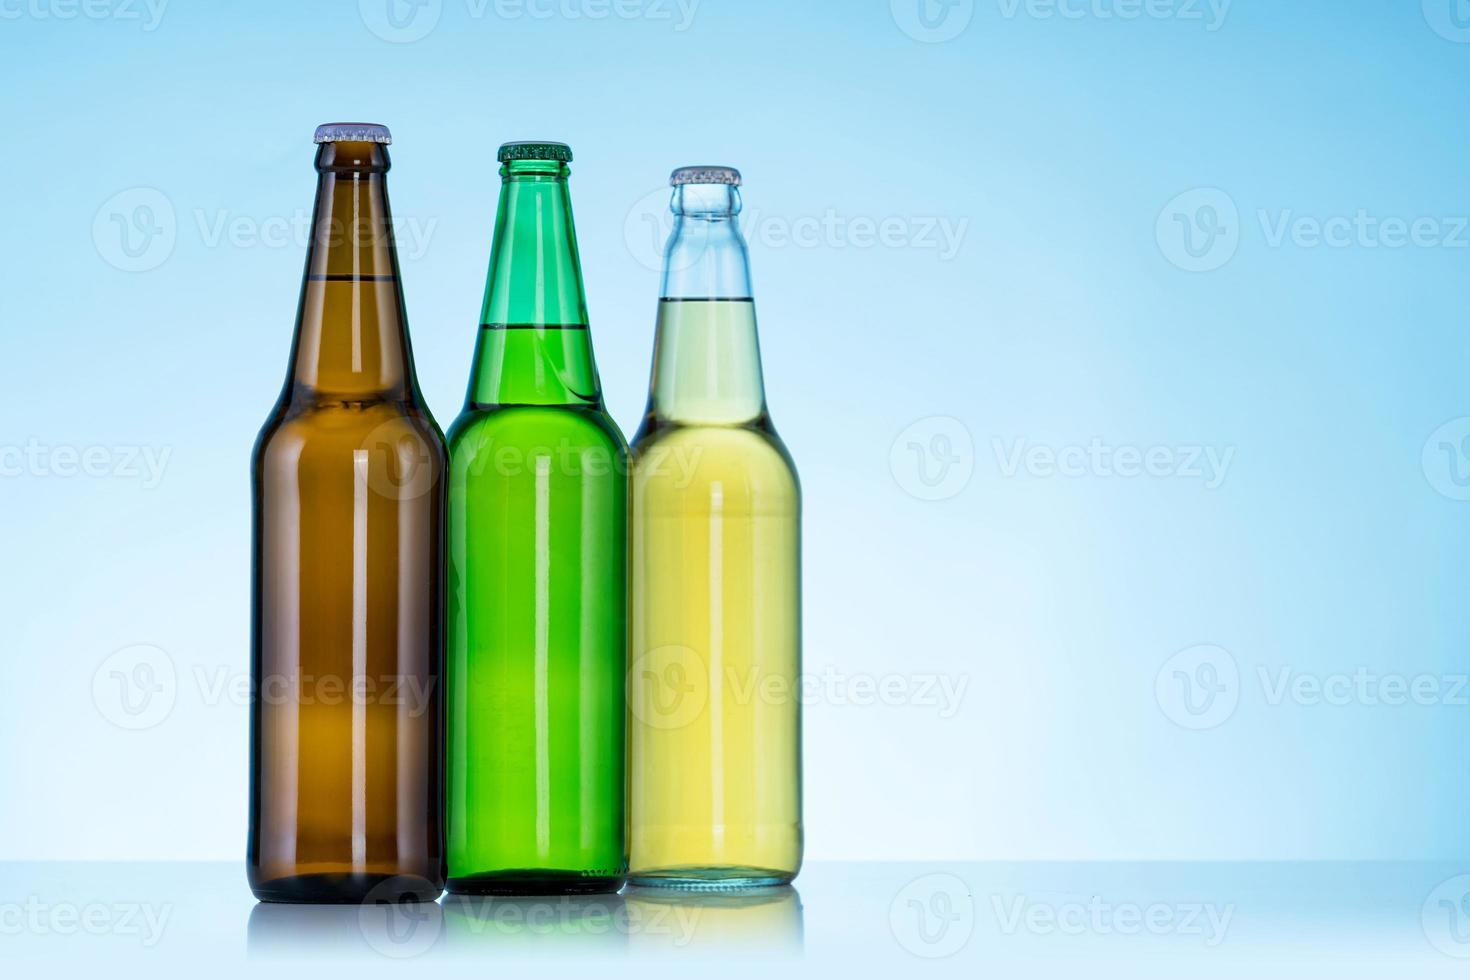 Group of Three bottles of beer on blue background photo